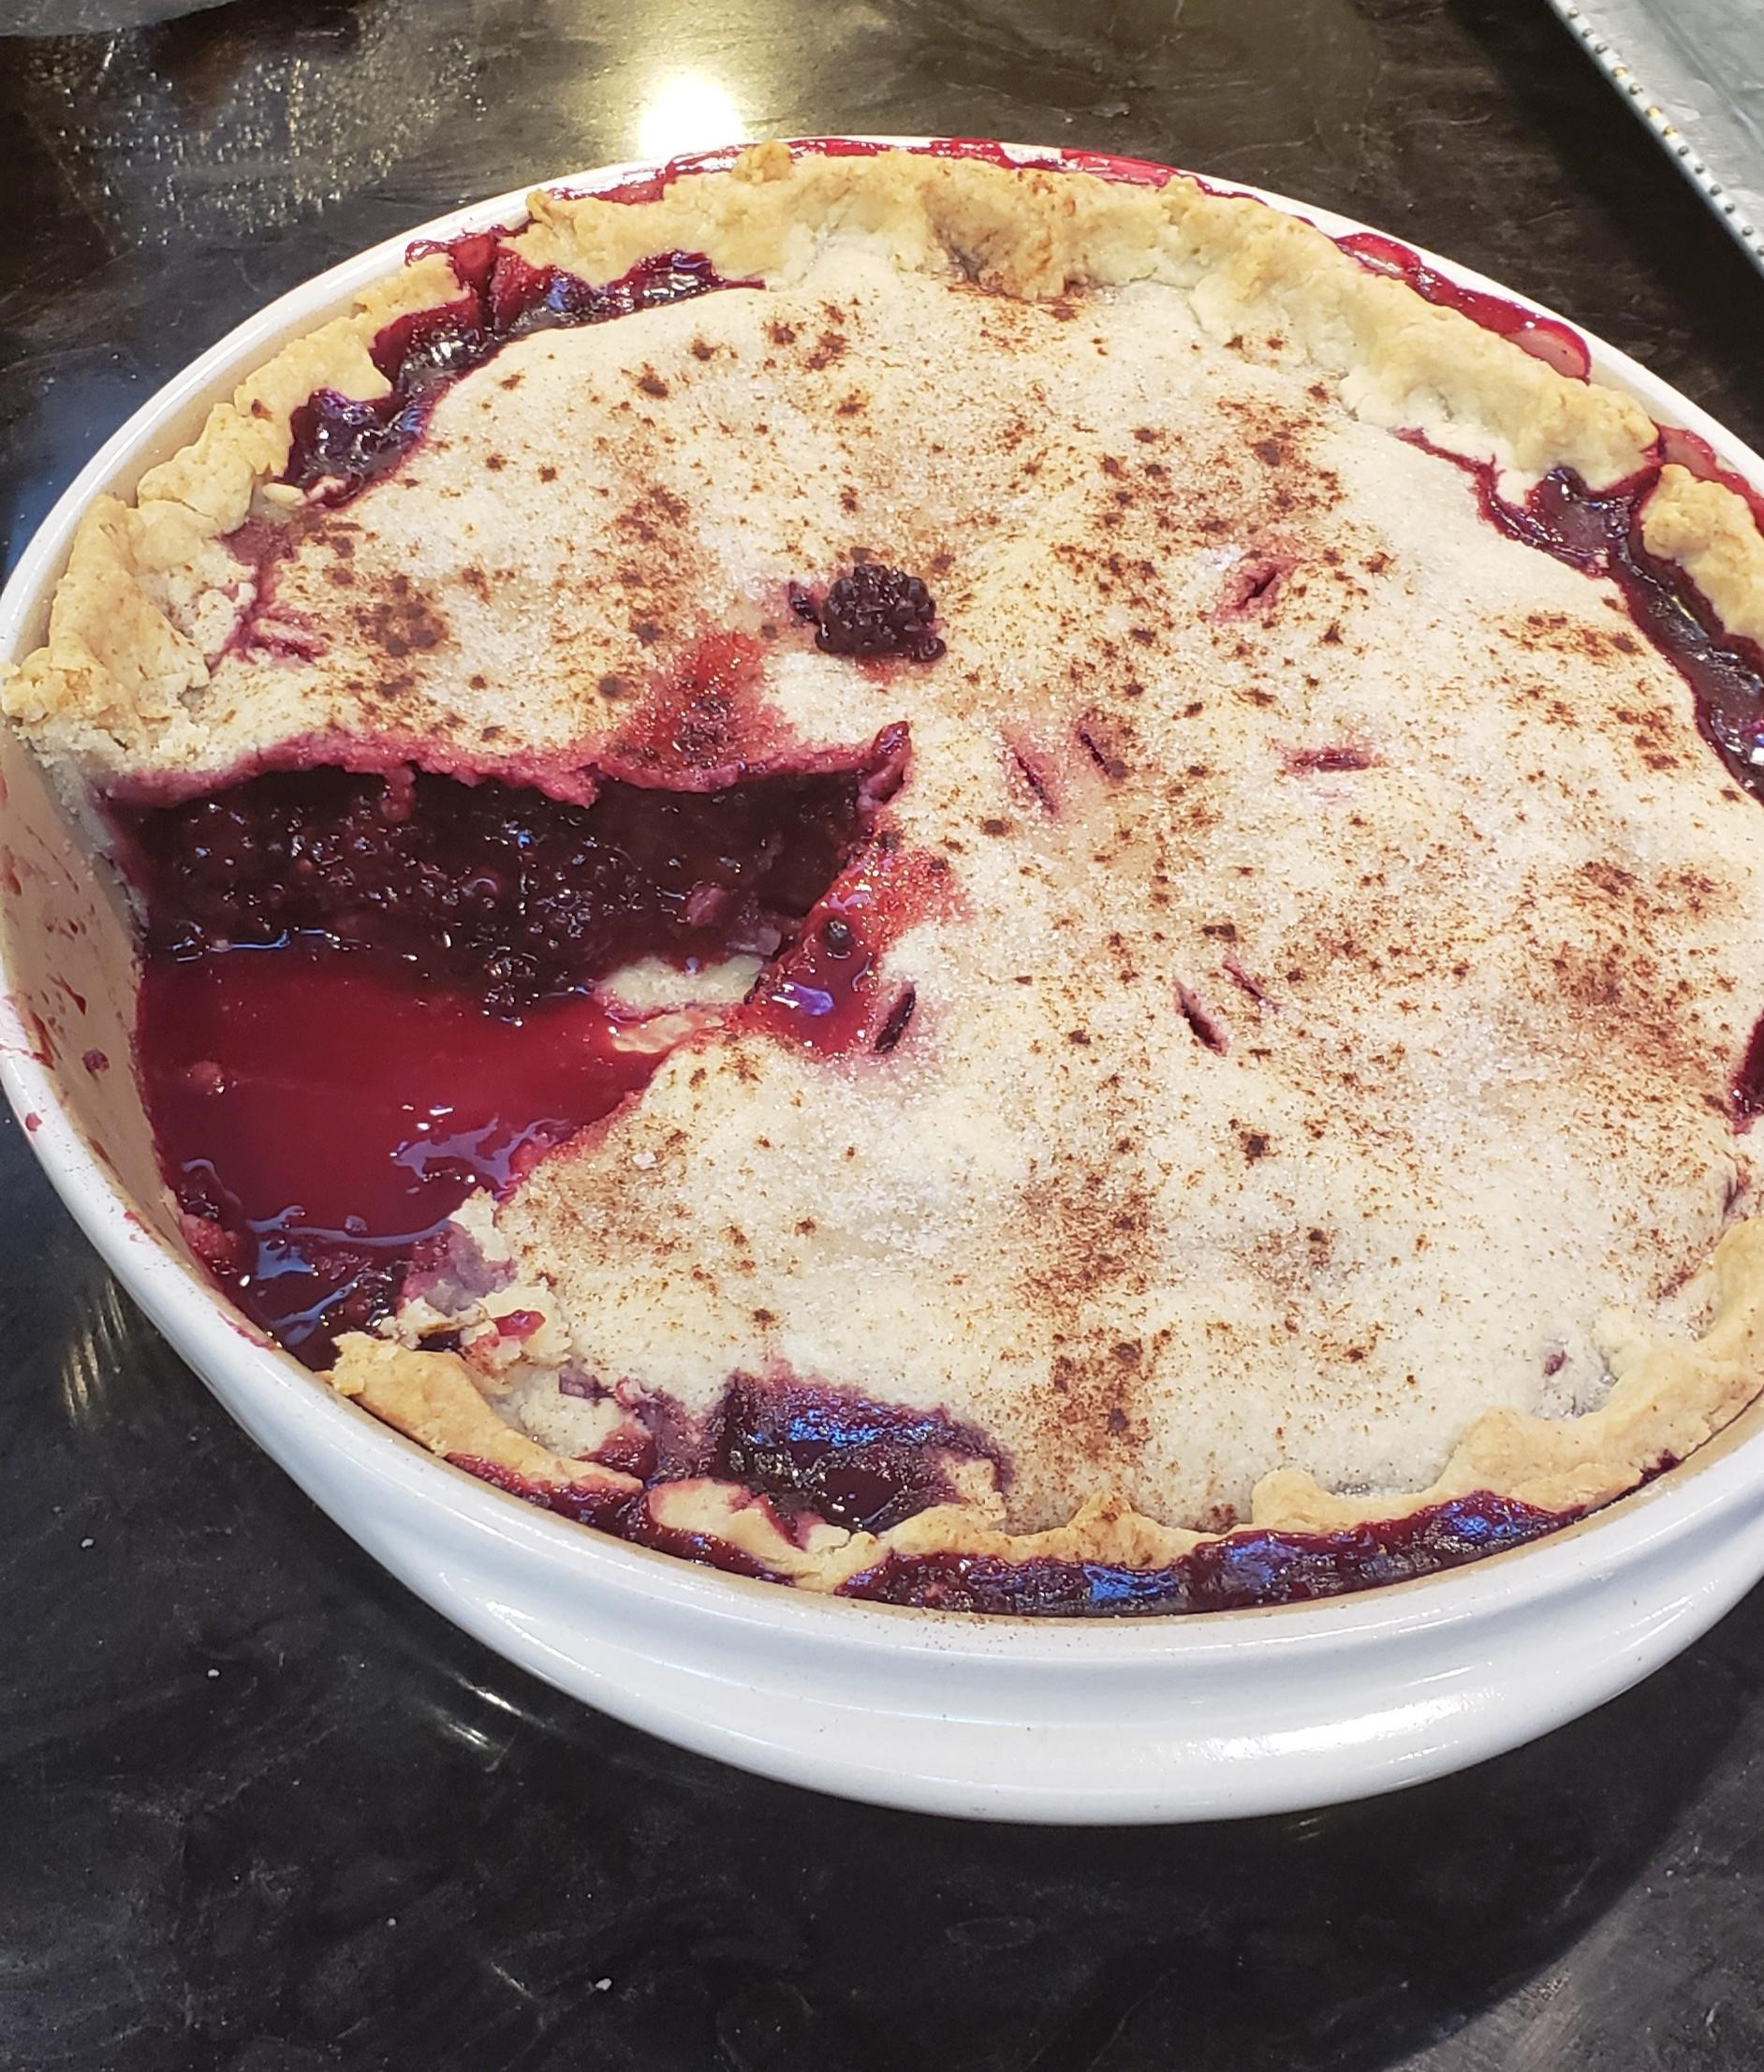 Grandma's Blackberry Pie